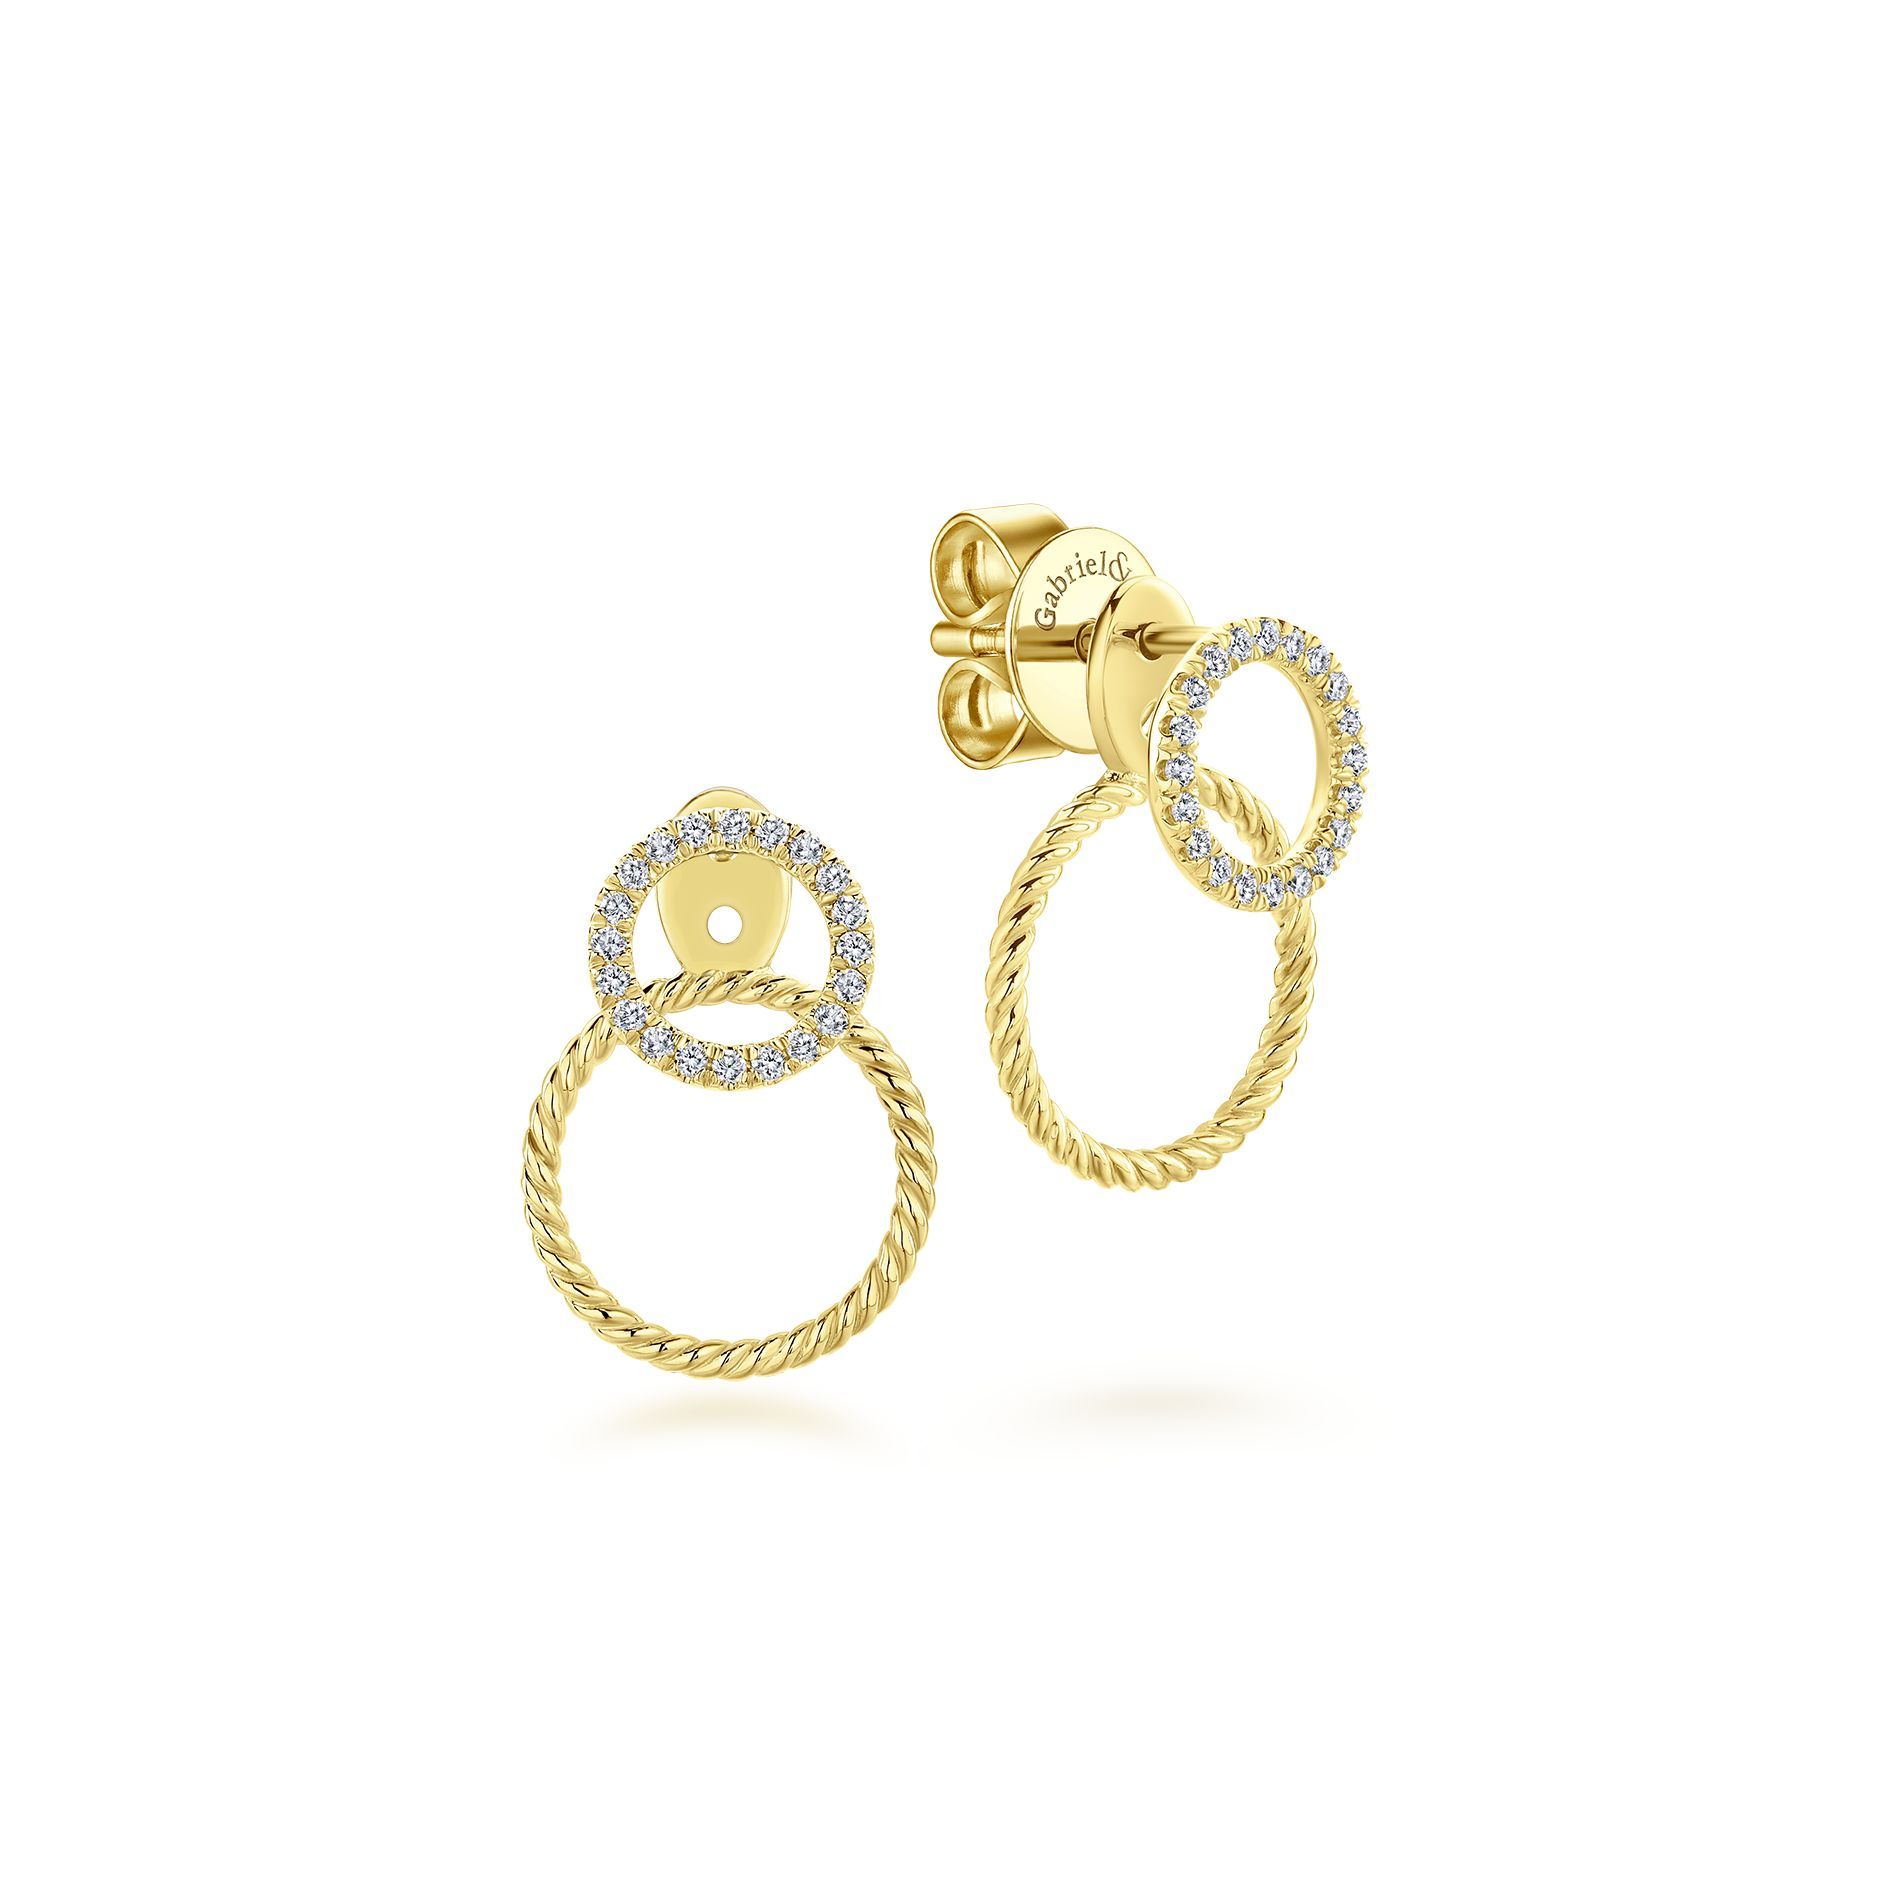 Earrings - YELLOW GOLD PEEK A BOO DOUBLE CIRCLE DIAMOND EARRINGS